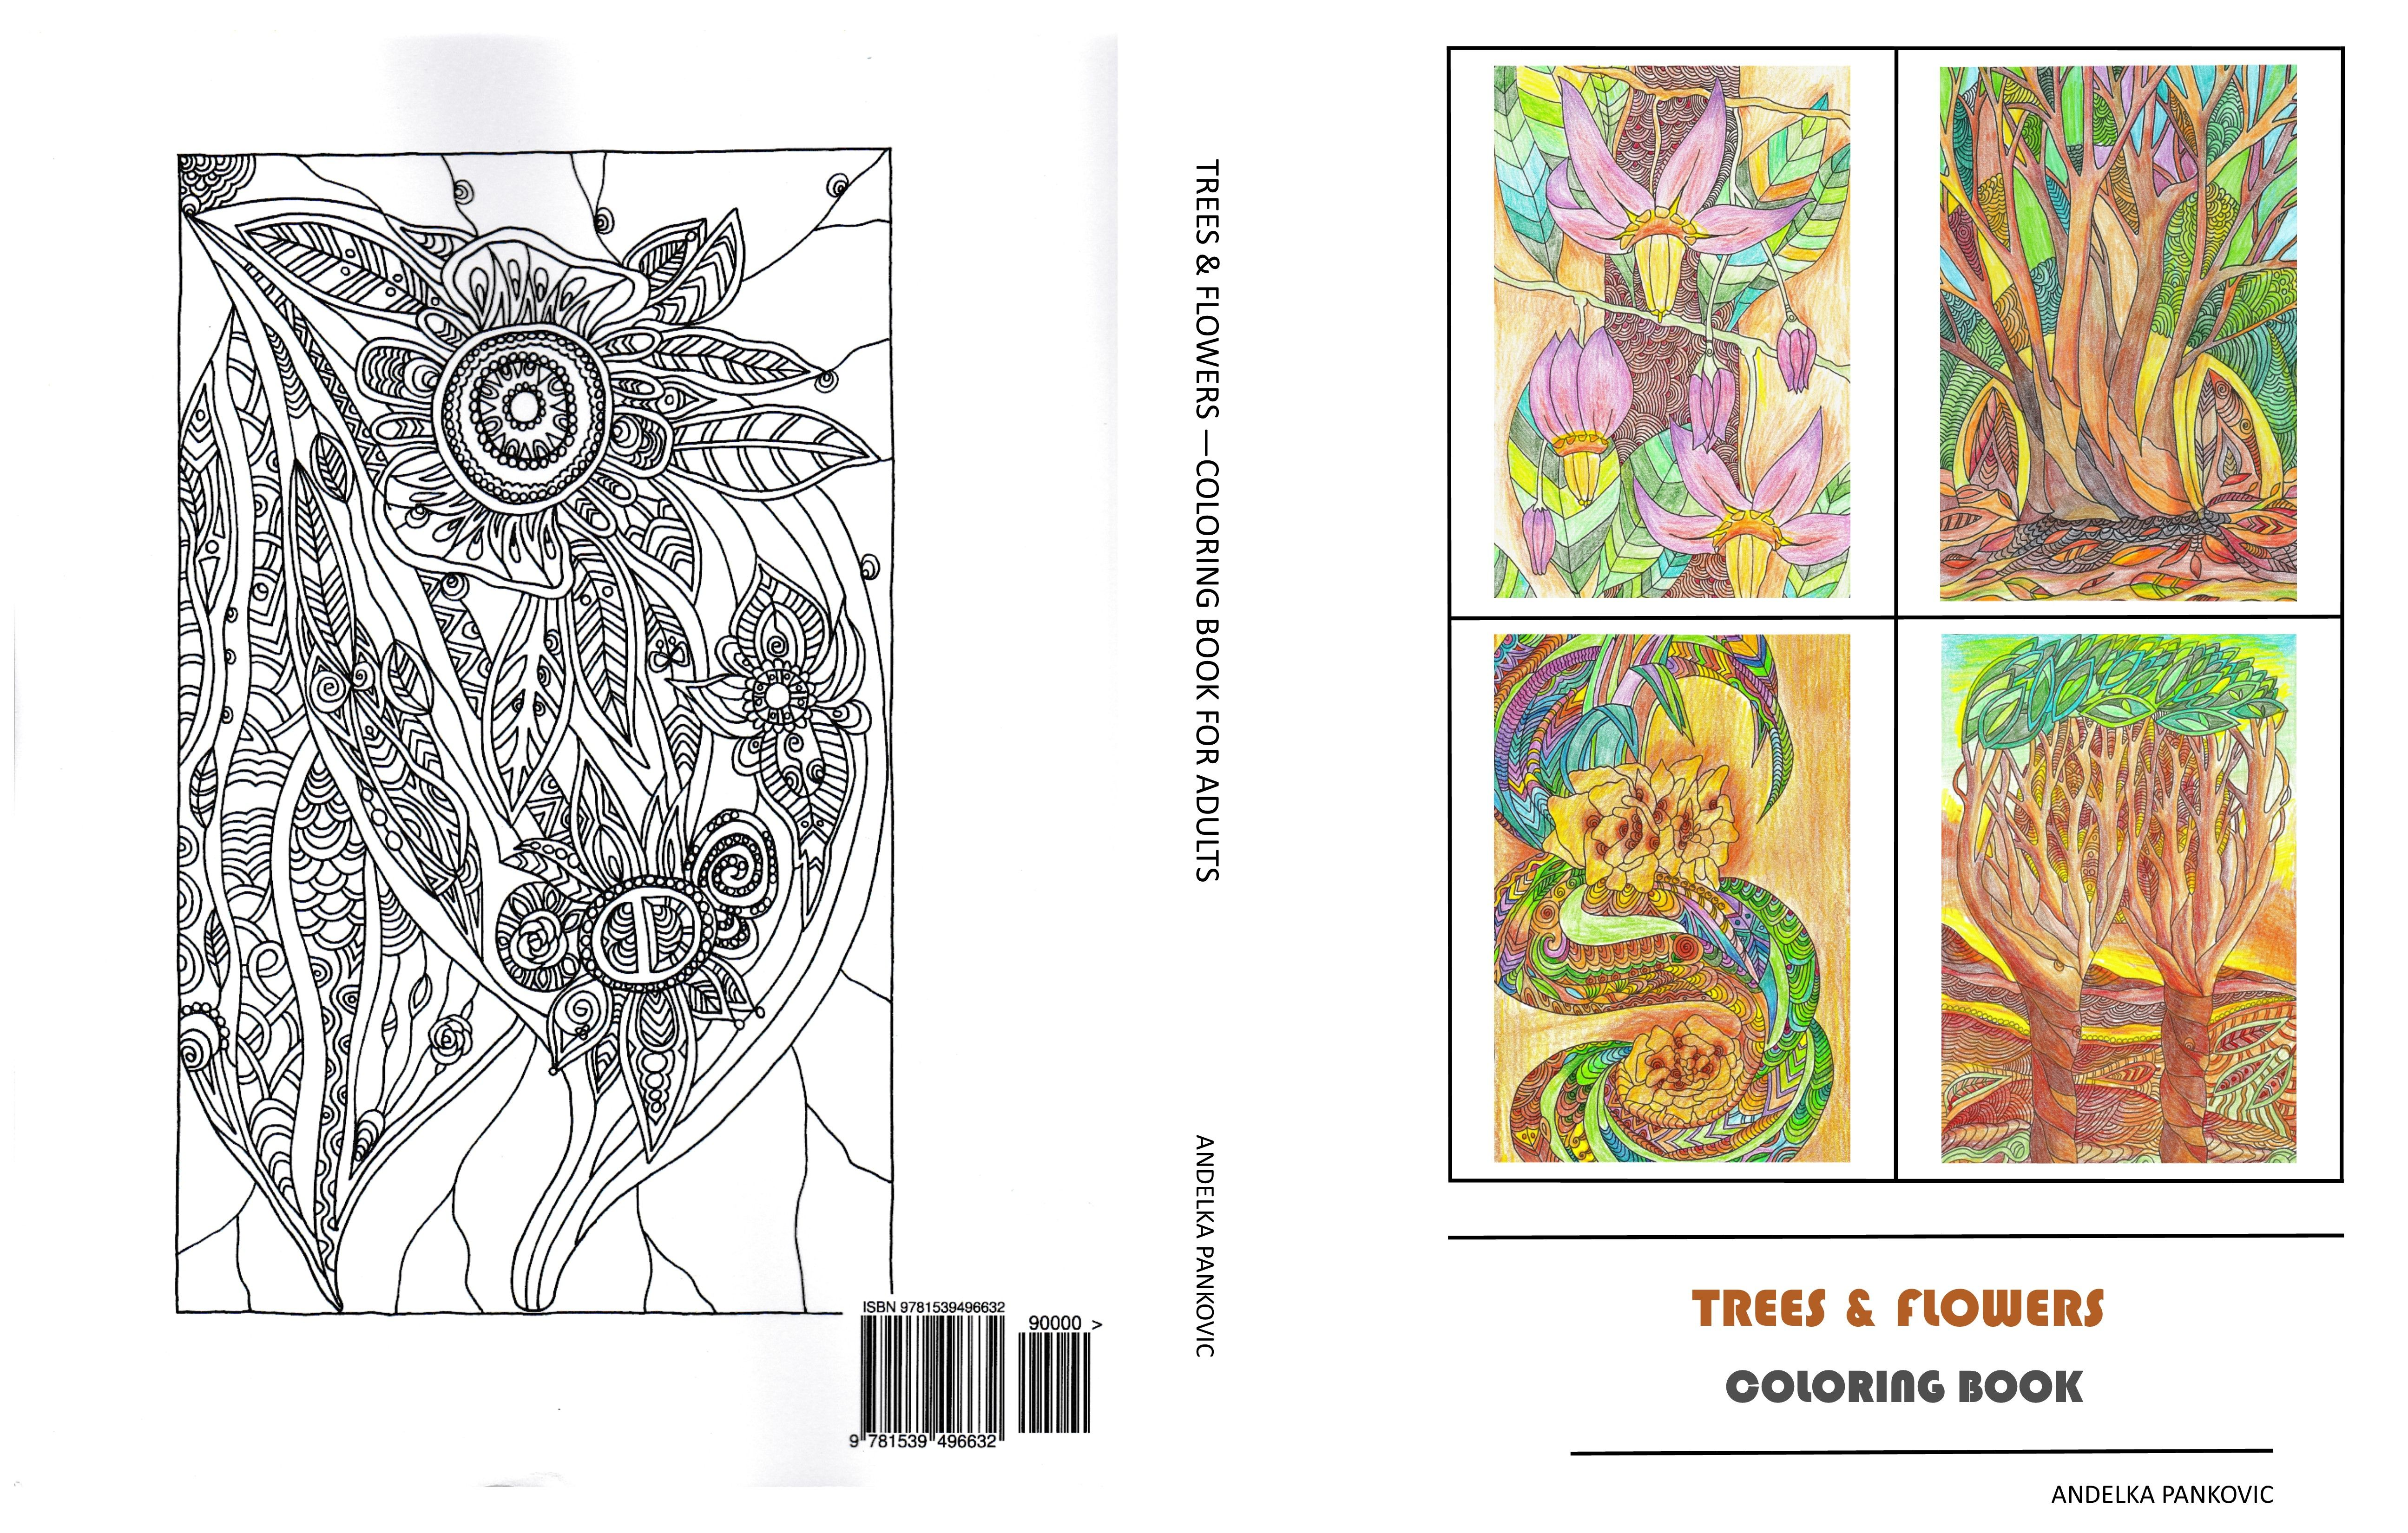 Coloring pictures of flowers and trees - Copertina Intera Del Libro Trees Flowers